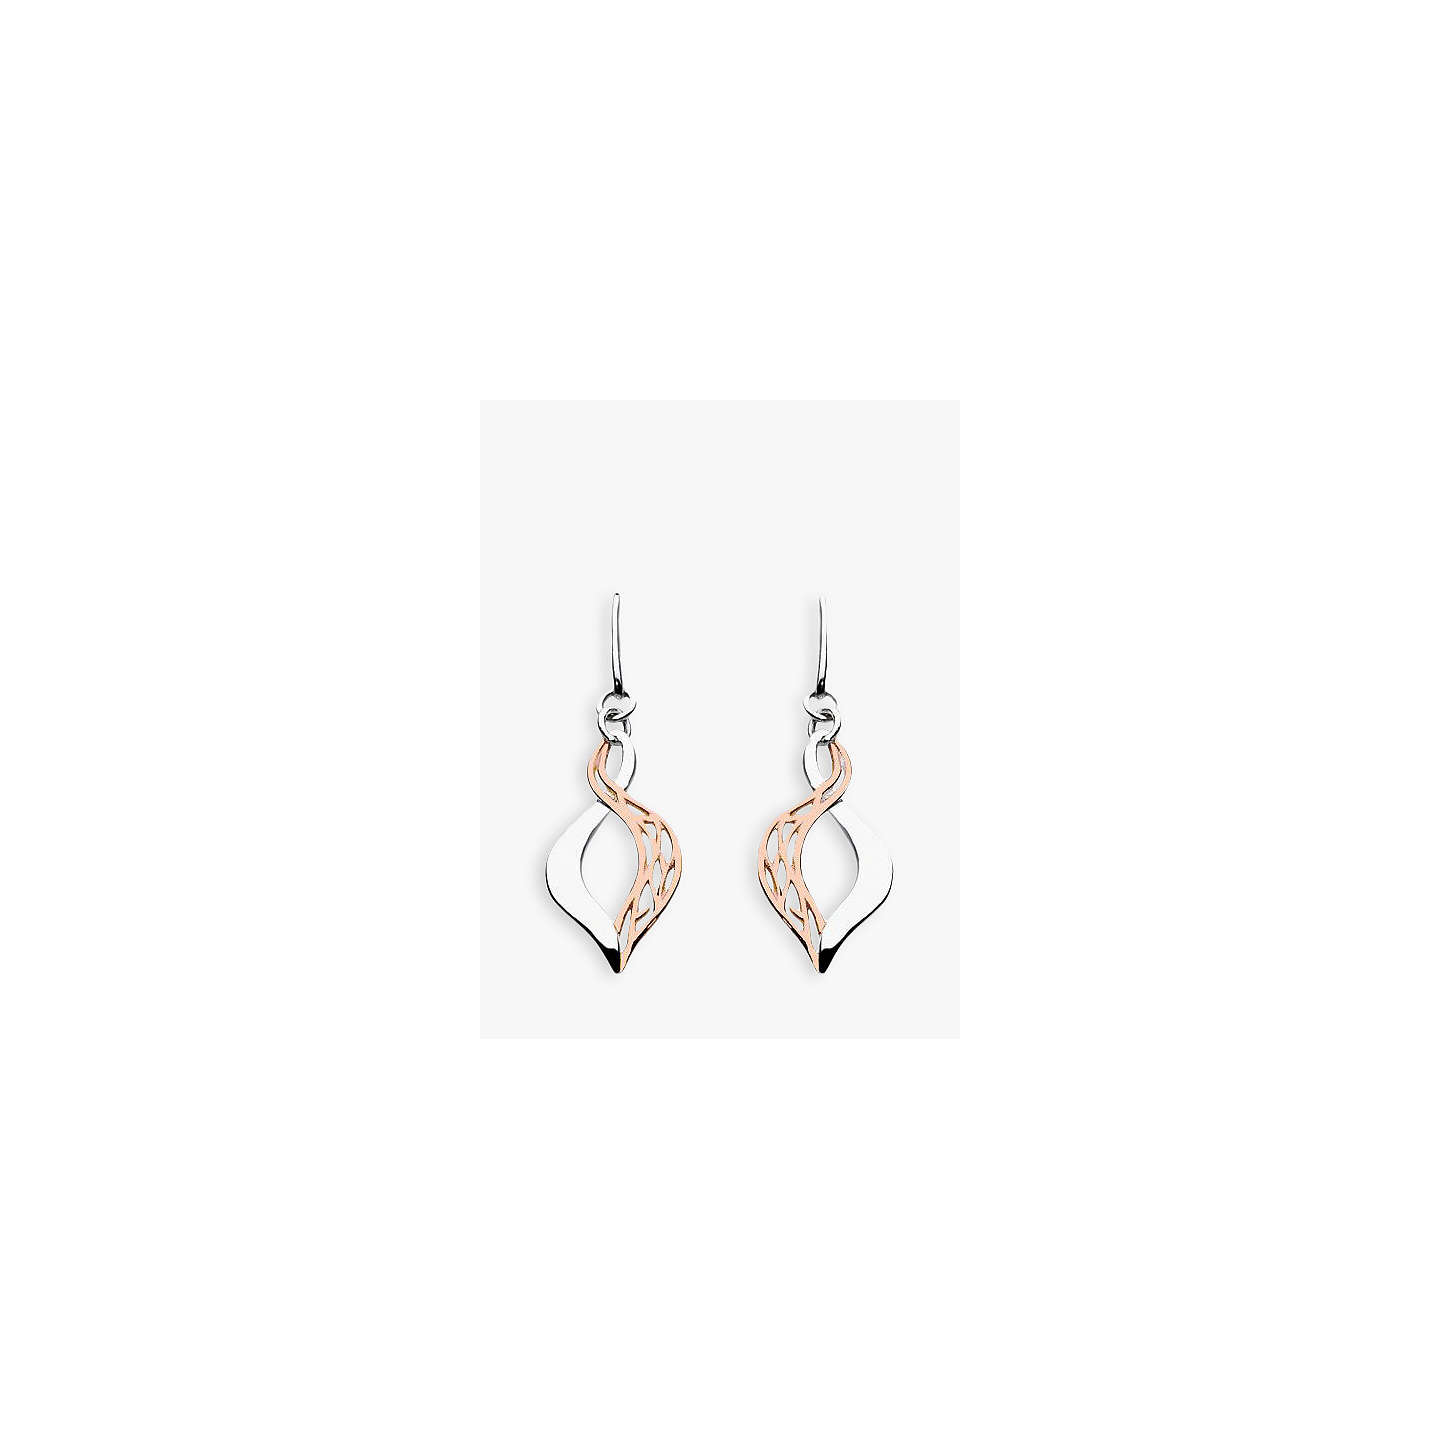 Kit Heath Grace Rose Gold Plated Sterling Silver Earrings Online At